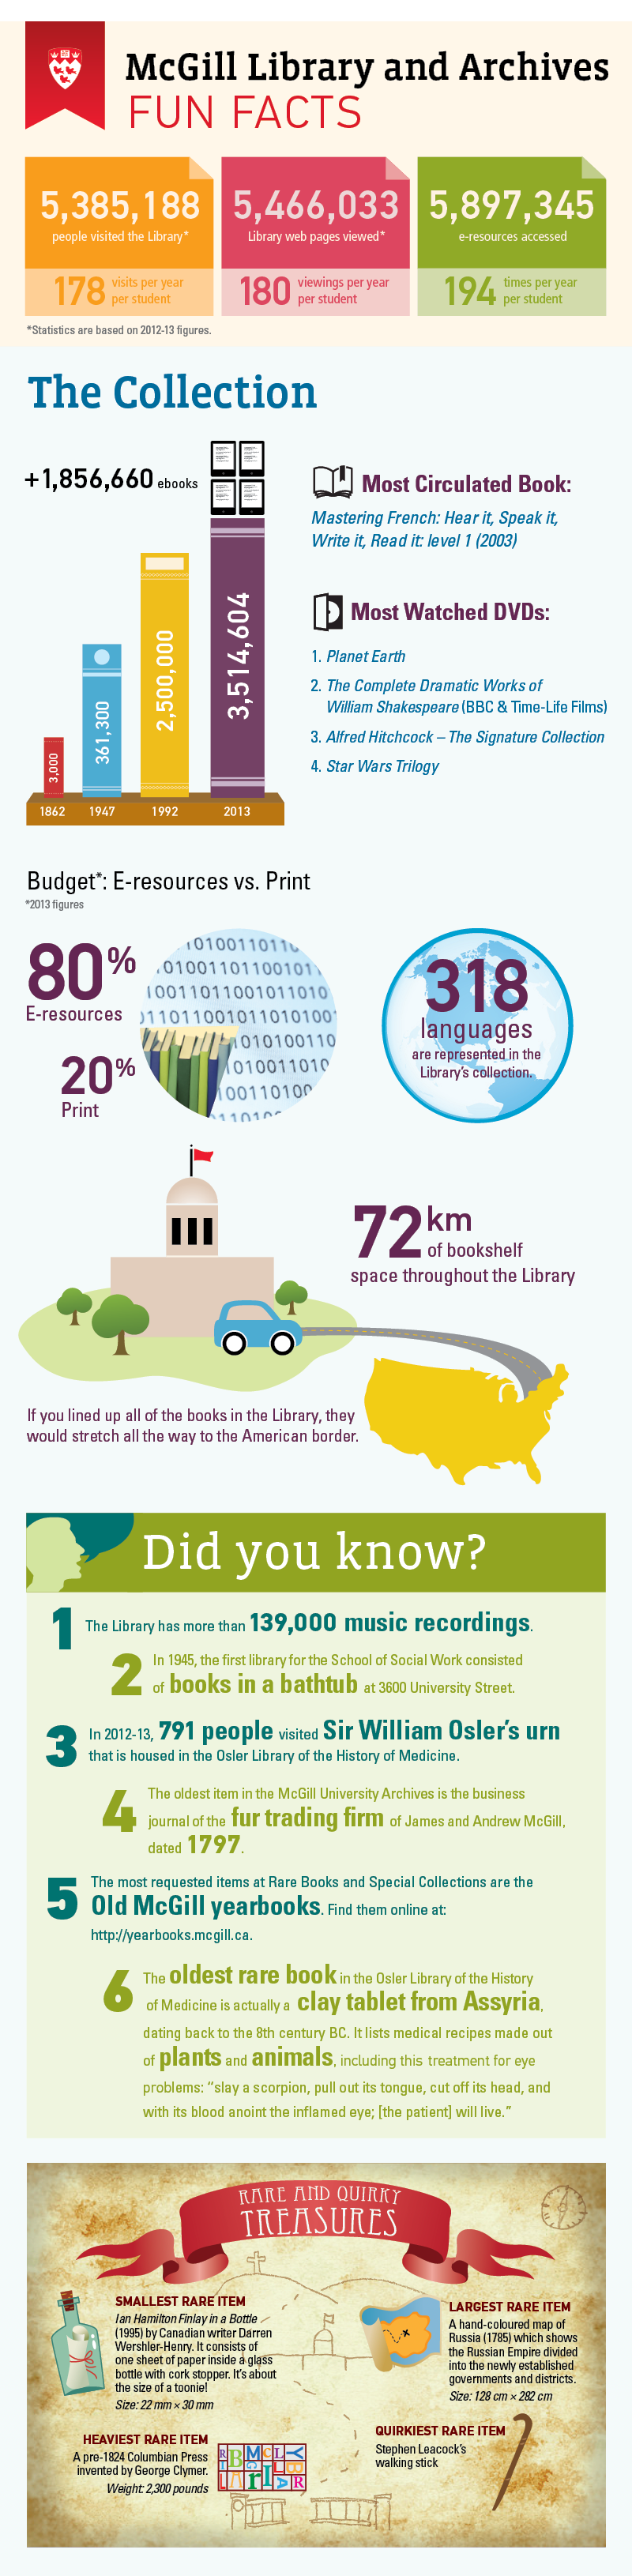 Infographic - McGill Library & Archives Fun Facts